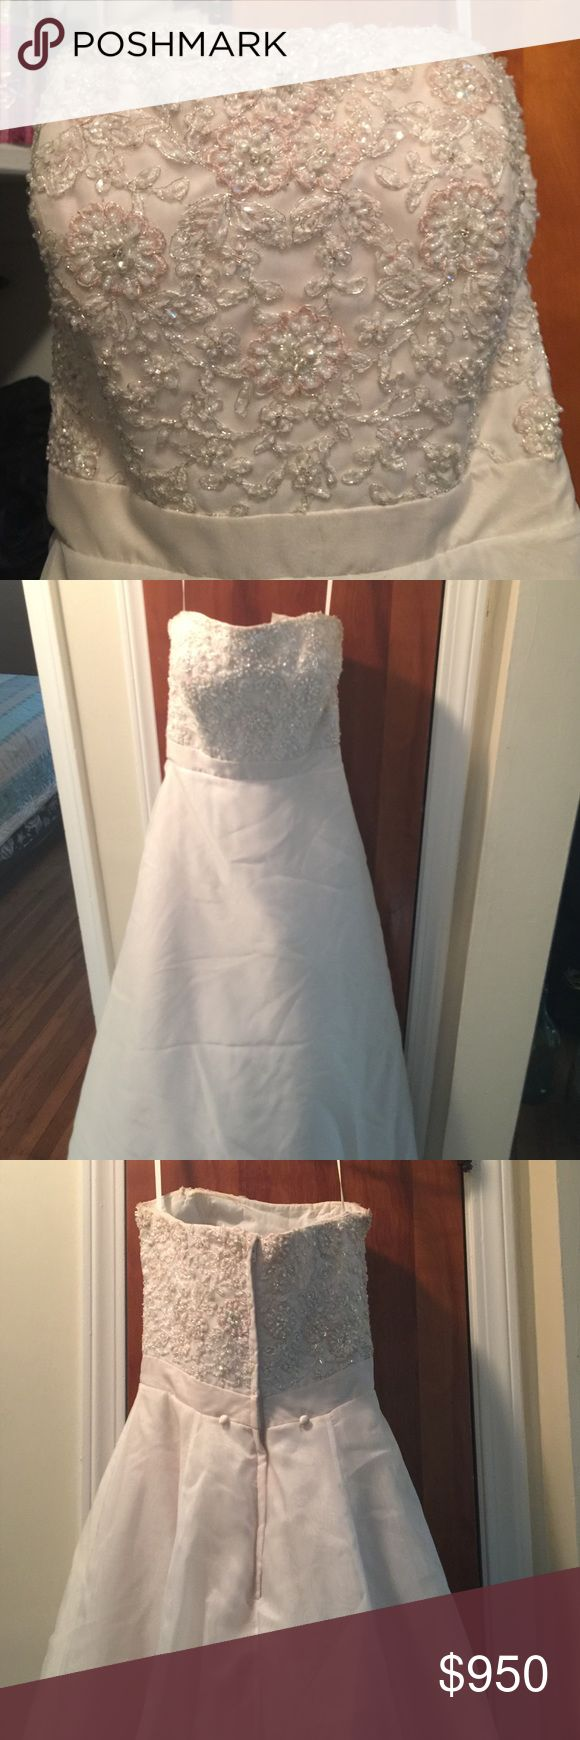 🔴📢Black Friday Sale!James Clifford James Clifford Collection Wedding Dress**Strapless**Ivory Satin with a hint of pink flowers**Size:00-0**Waist:24-25 inches...Absolutely Gorgeous! Worn only once in 2009 James Clifford Collection Dresses Wedding